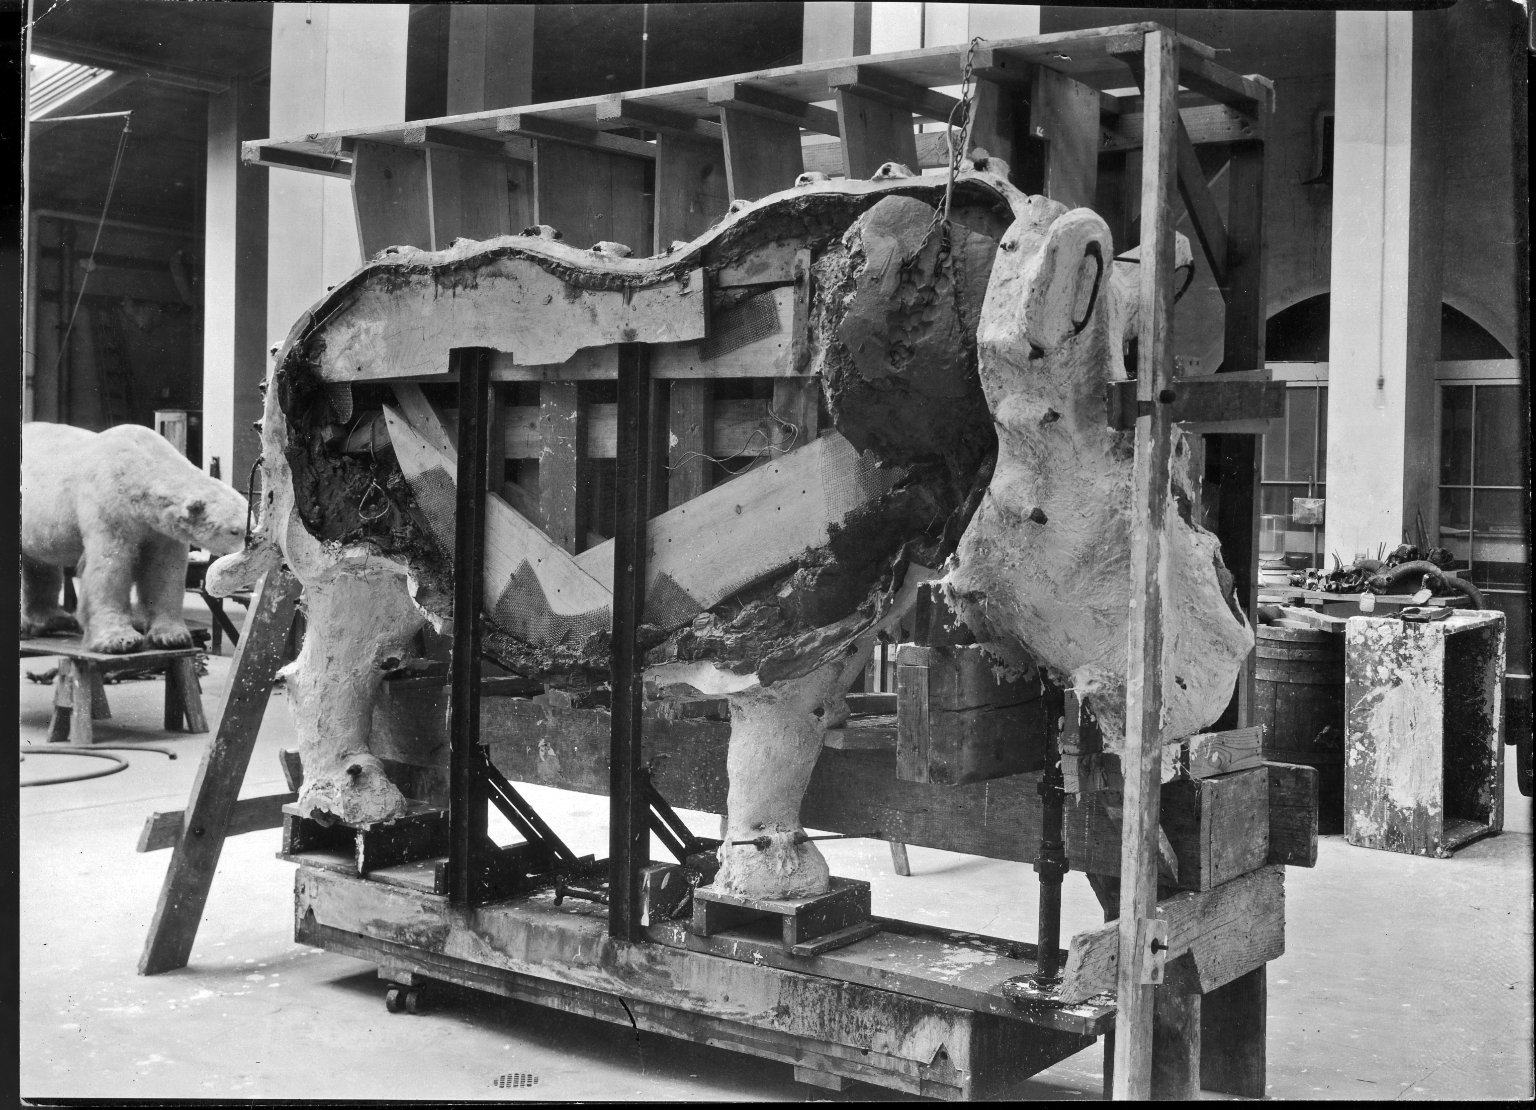 Mount being prepared for exhibit at The Field Museum